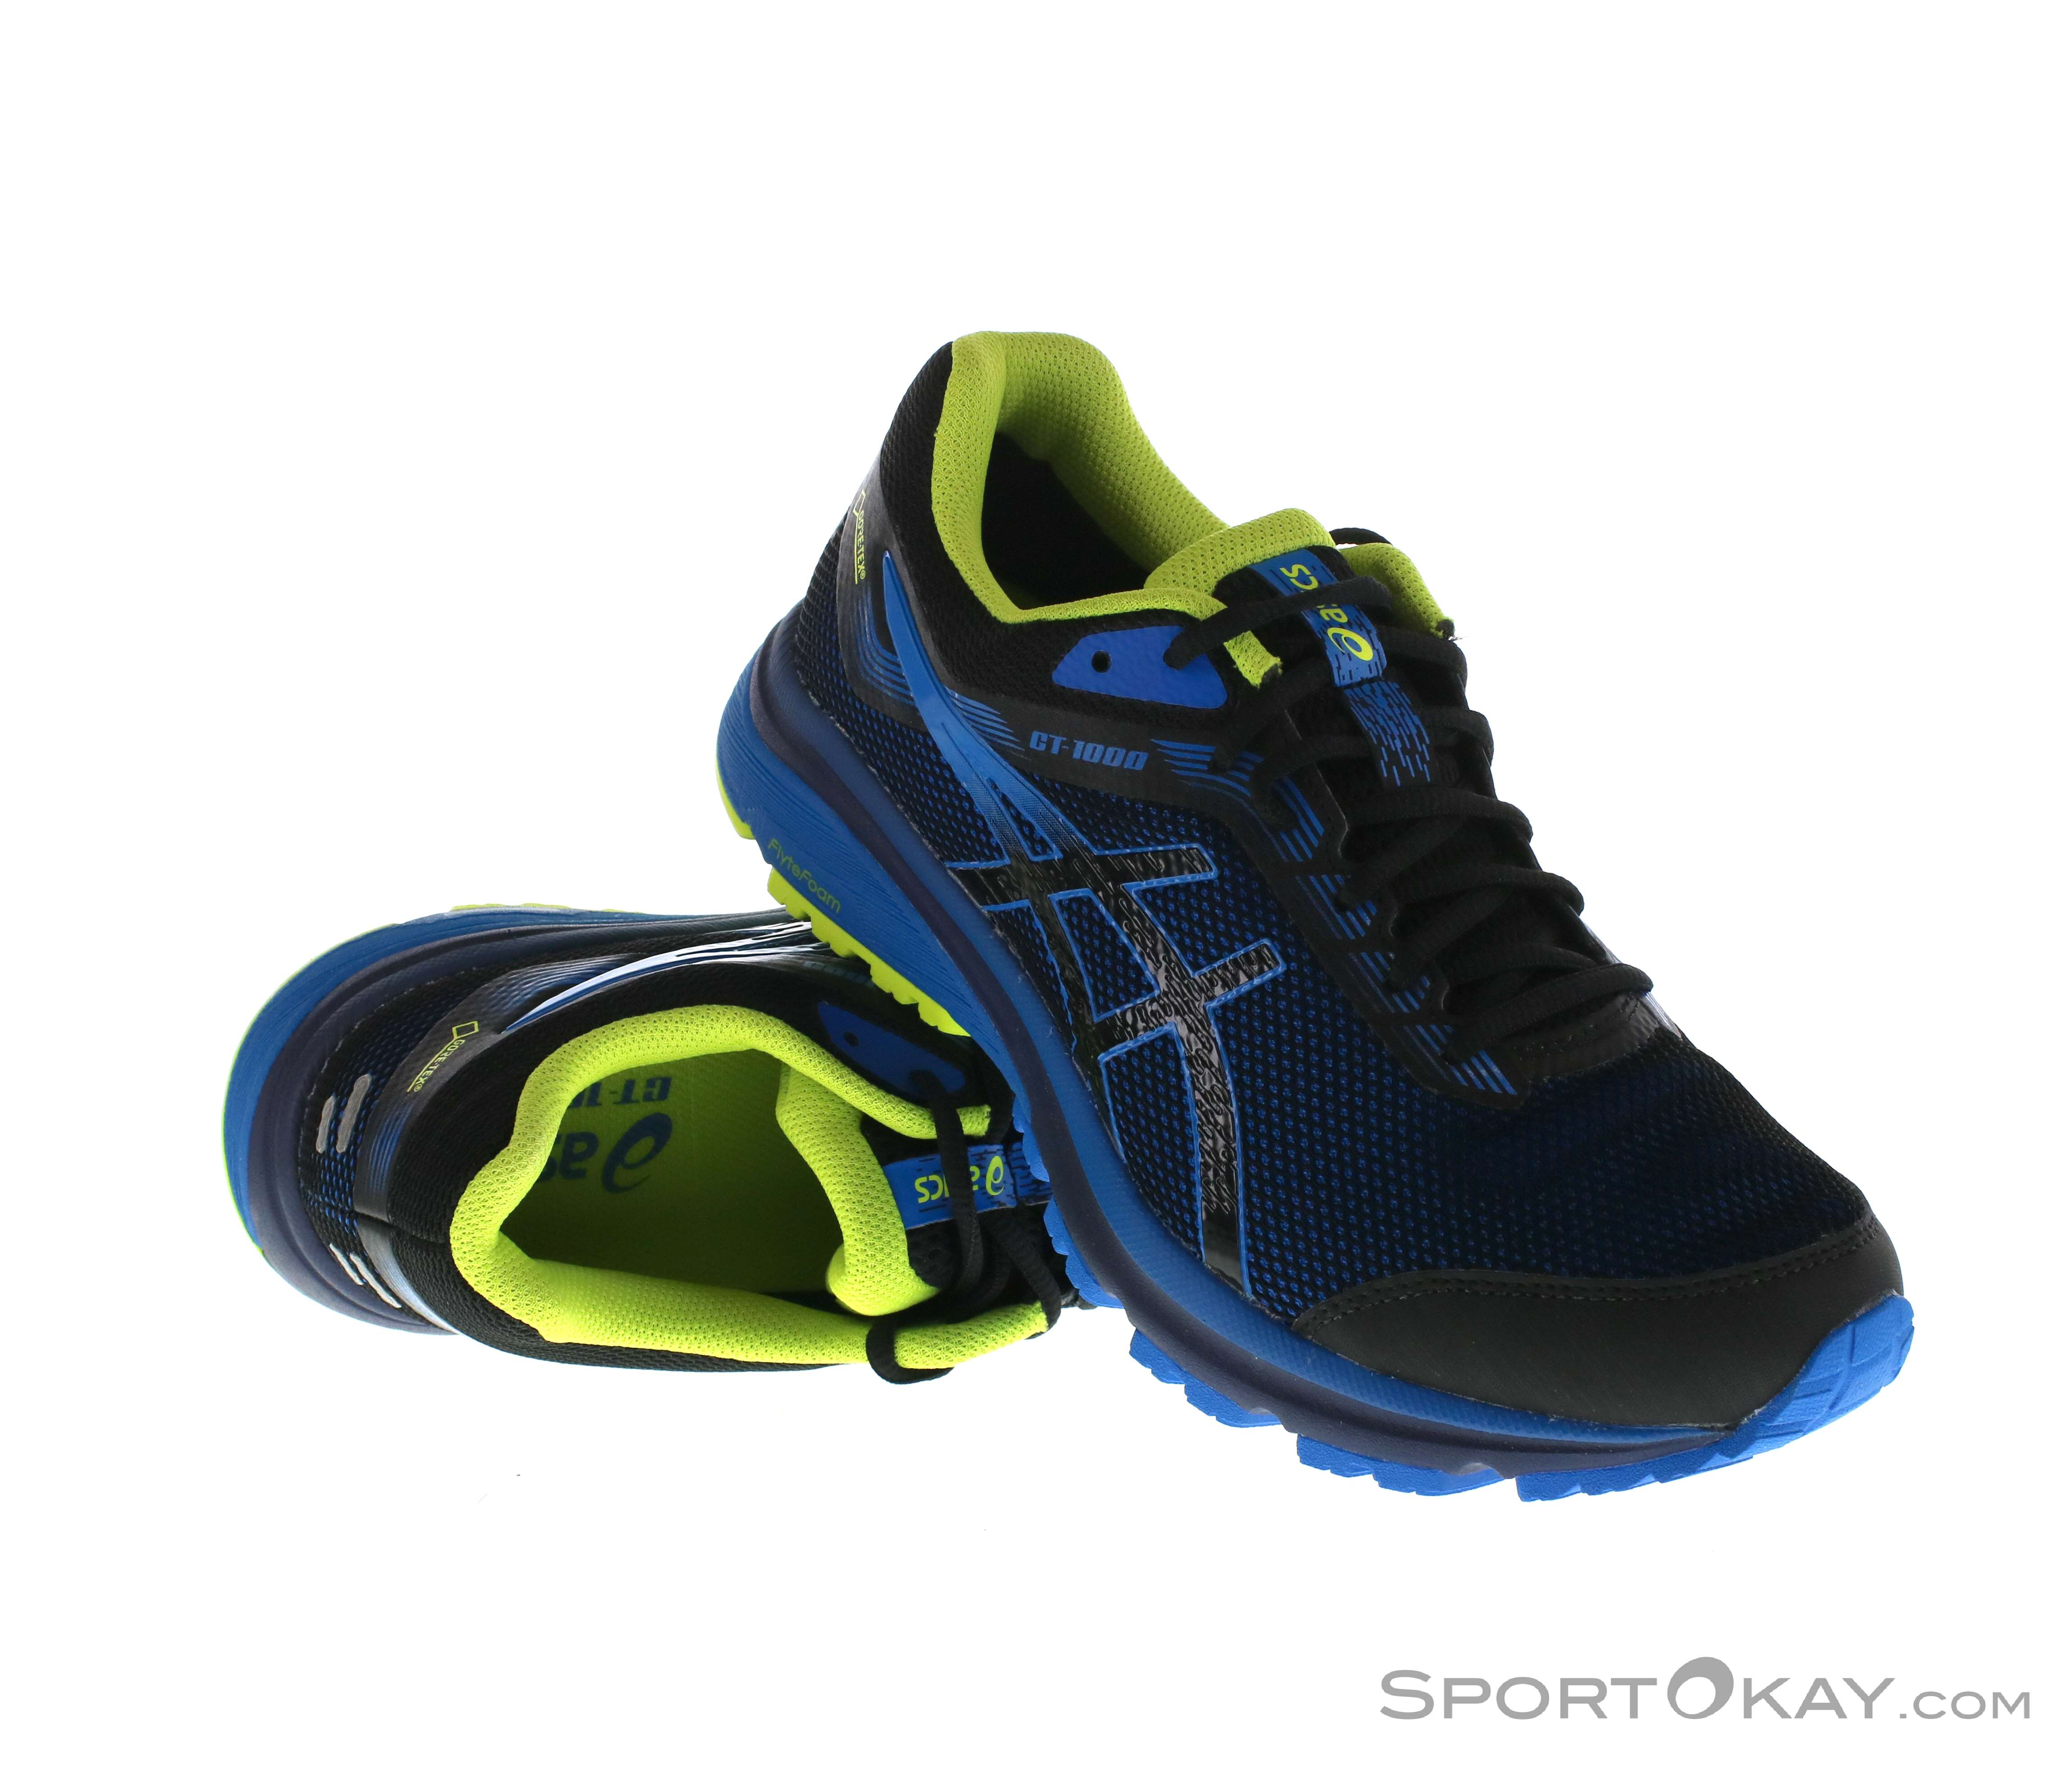 1e9bb27d9e Asics GT-1000 7 GTX Mens Running Shoes Gore-Tex - Gore-Tex Running ...